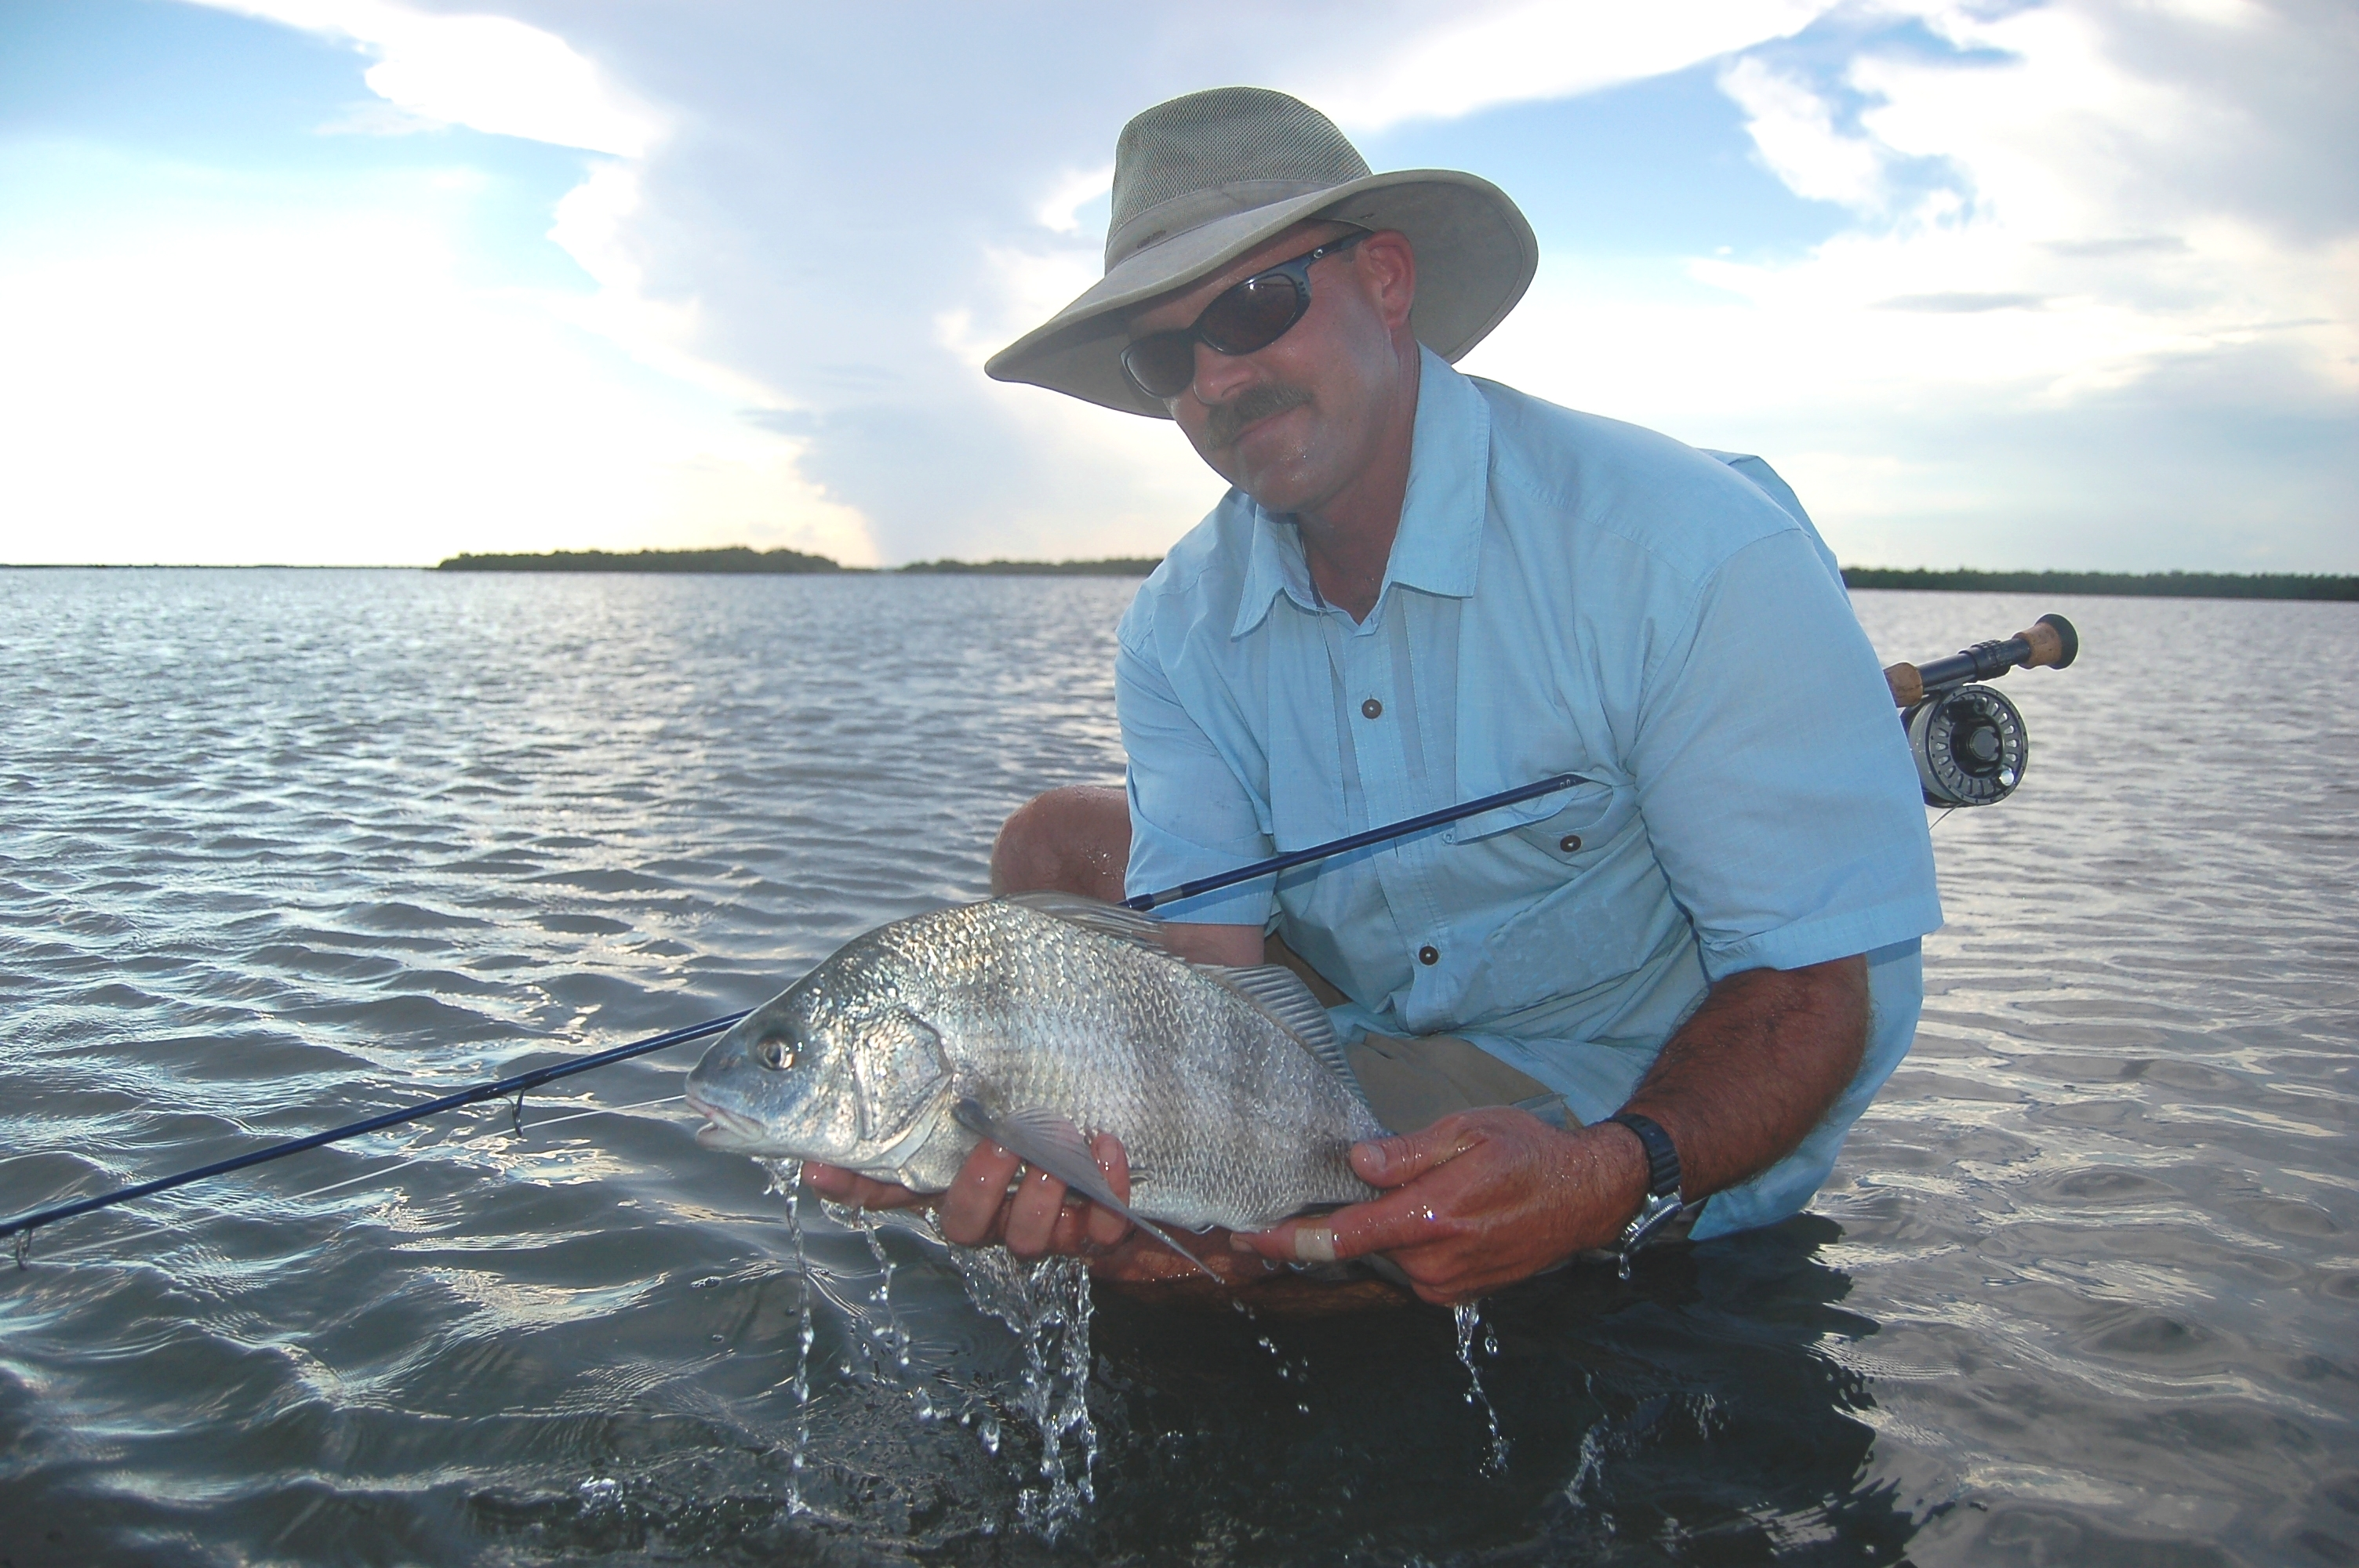 Nose job fly fishing for black drum Fish for jobs